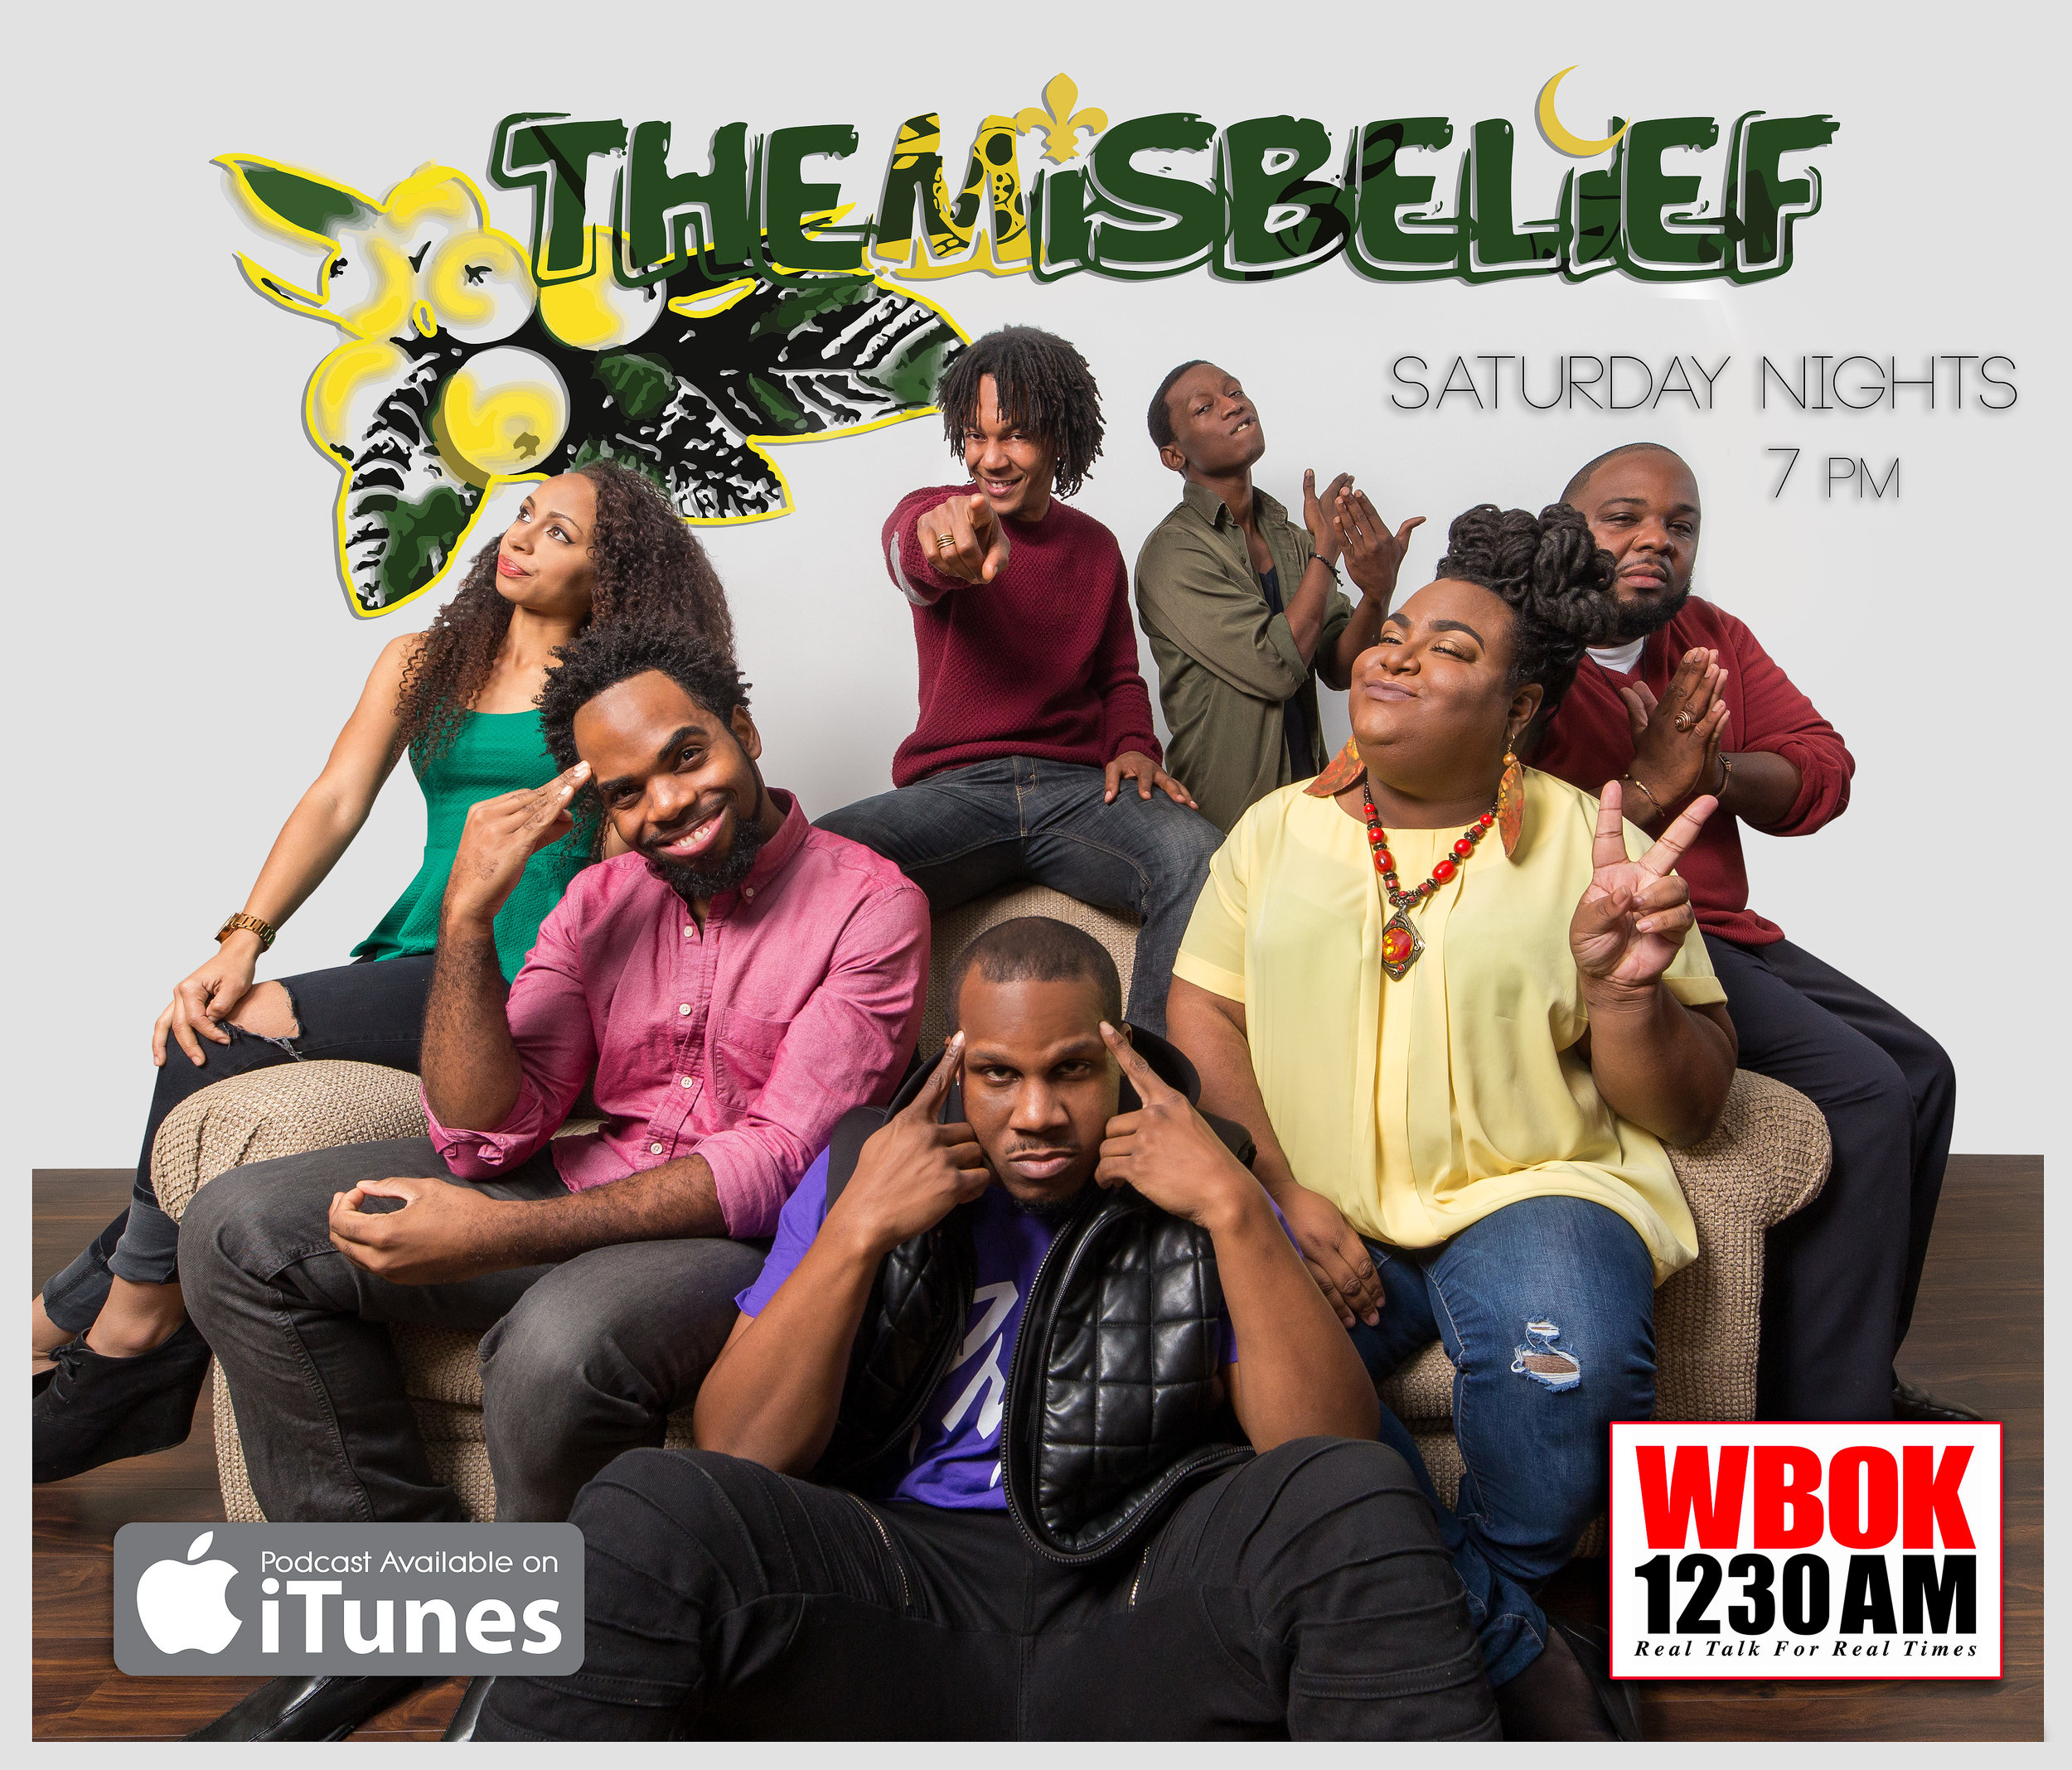 TheMisbelief - available on iTunes, Facebook, Instagram, YouTube, and www.TheMisbelief.podbean.com